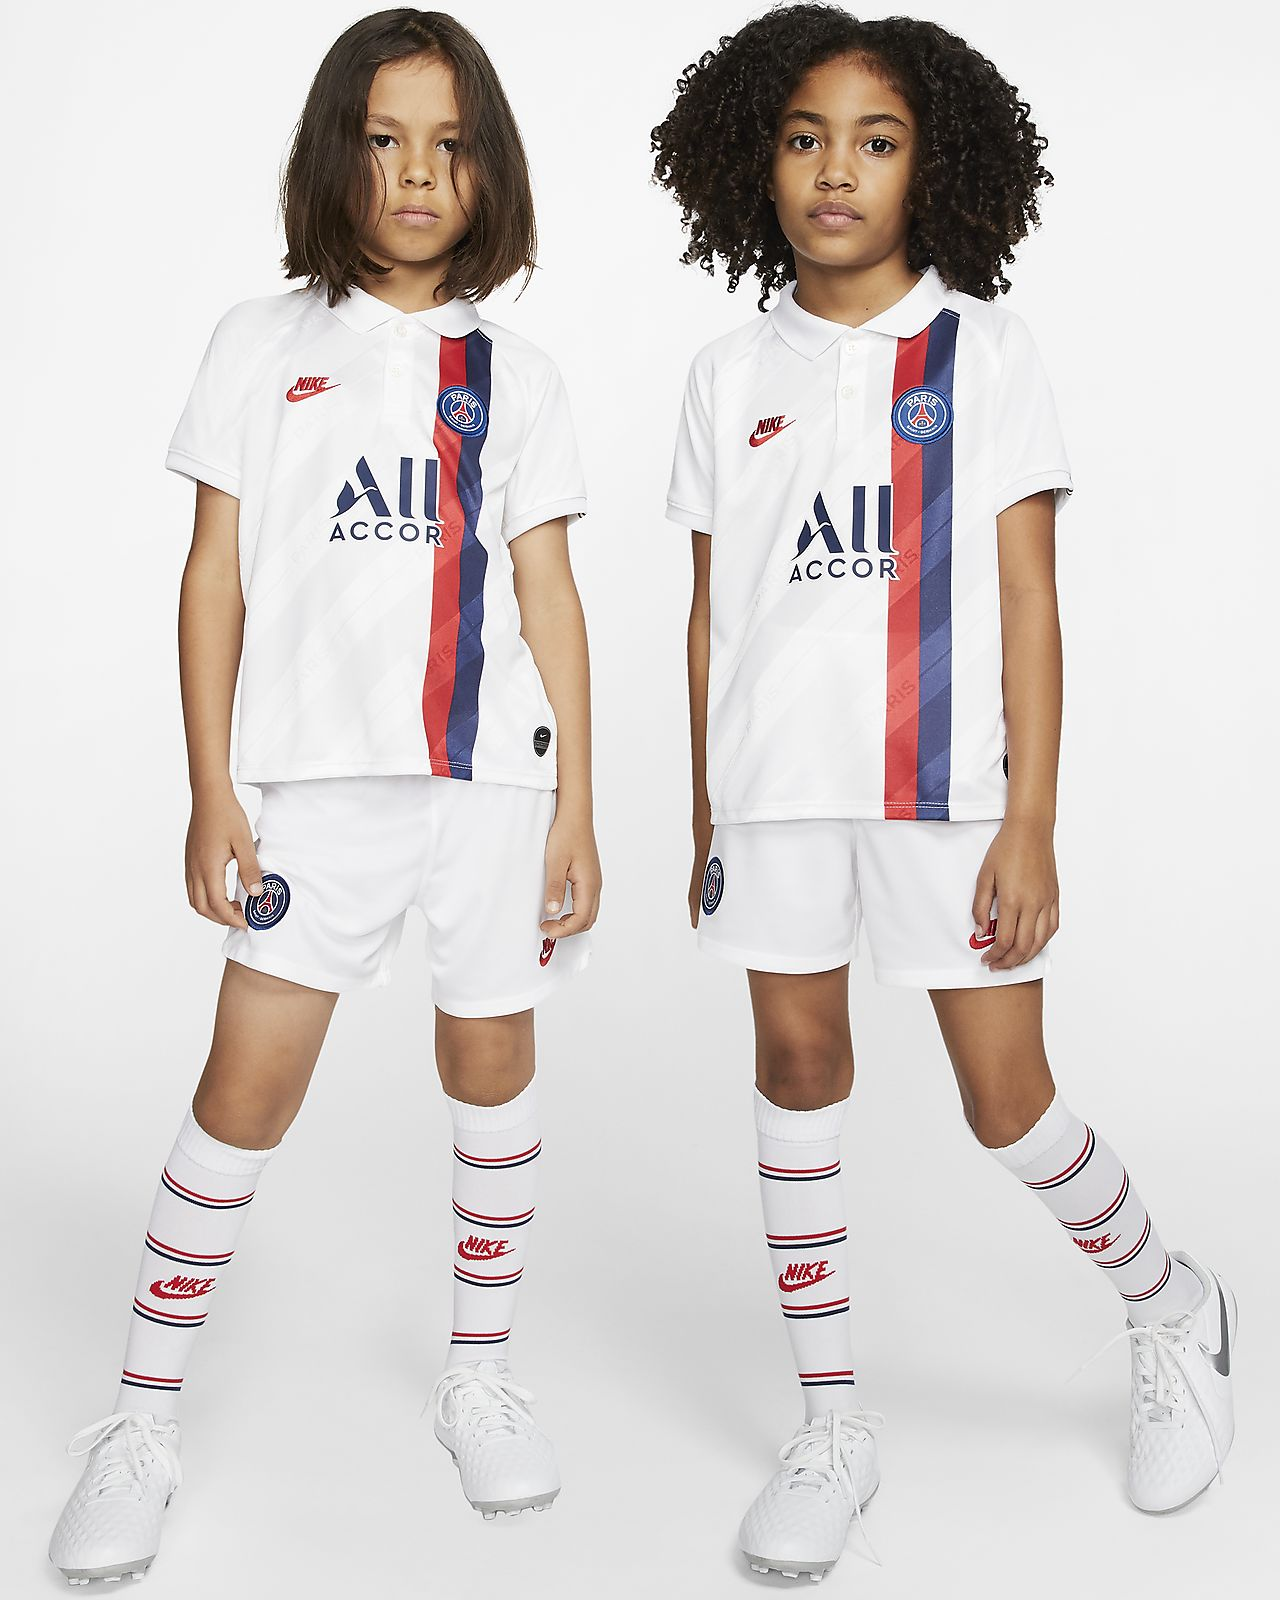 Paris Saint-Germain 2019/20 Third Younger Kids' Football Kit